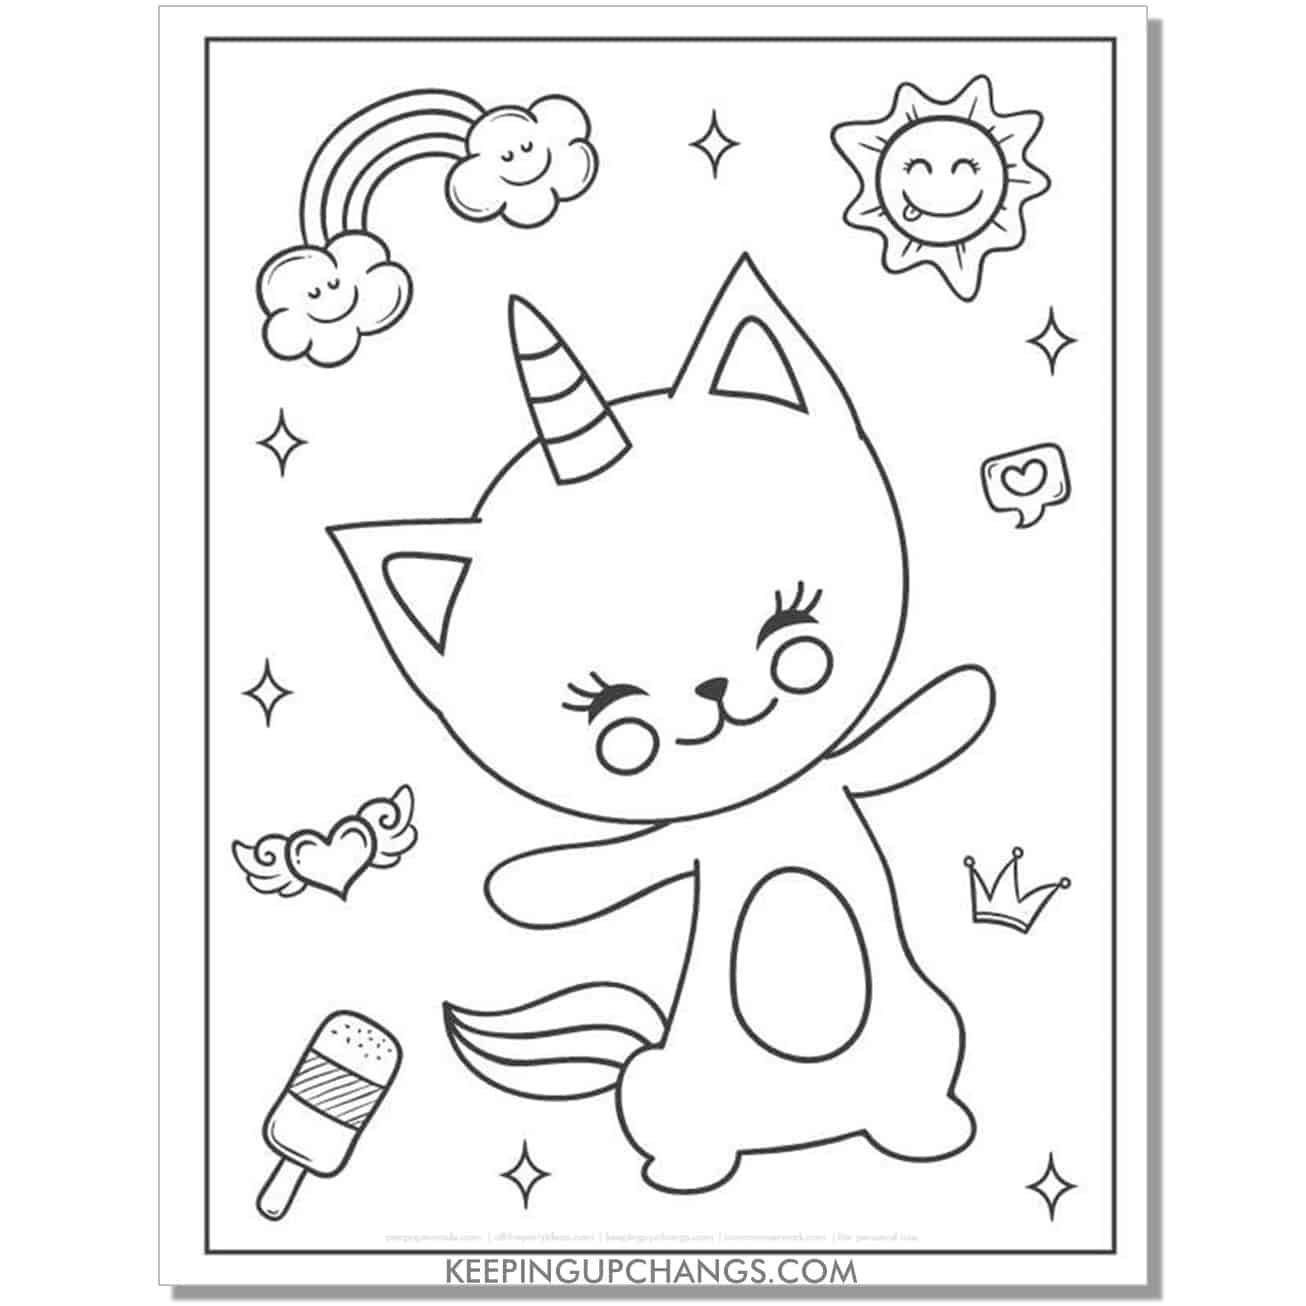 dancing cat unicorn with butterfly angel wing heart, ice cream and sun coloring page.